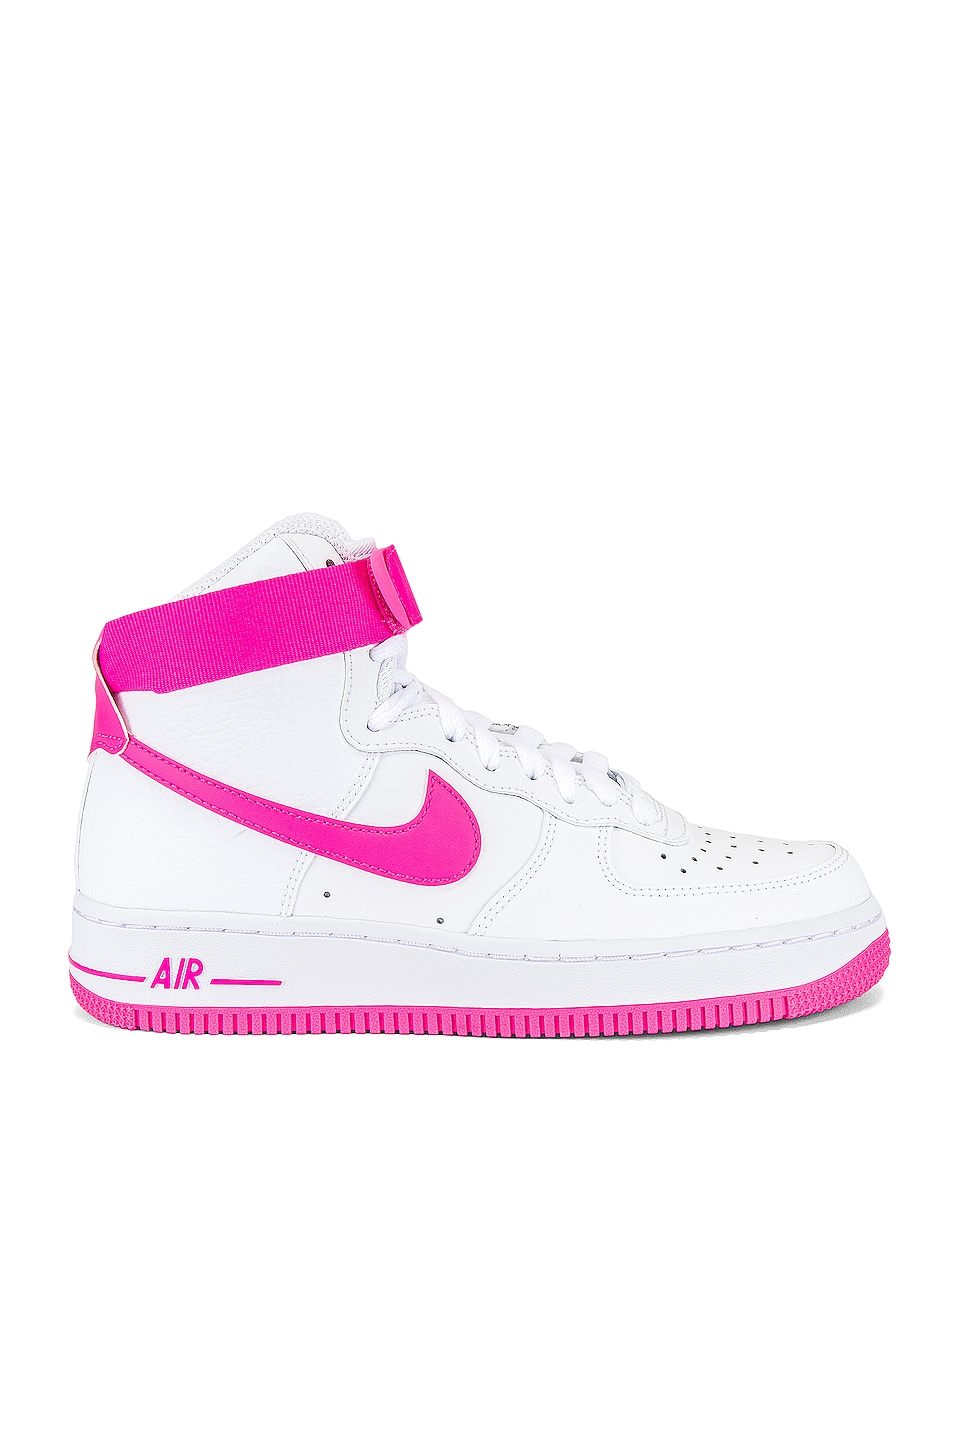 Reanimar Indígena George Stevenson  Nike Women's Air Force 1 Hi Sneaker in White & Hot Pink | REVOLVE